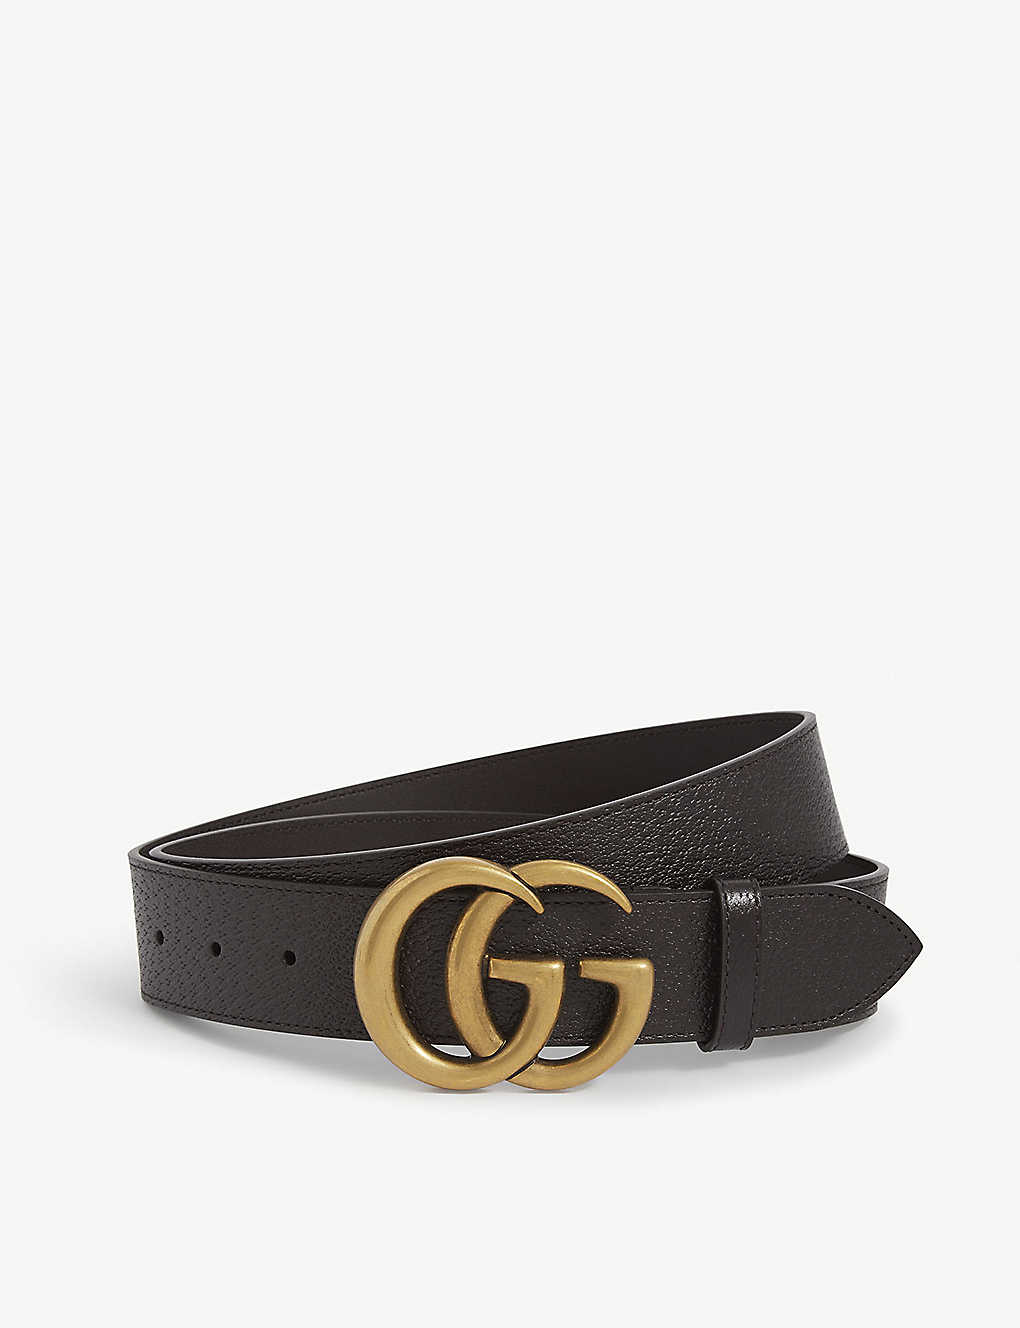 GUCCI: GG logo leather and suede belt